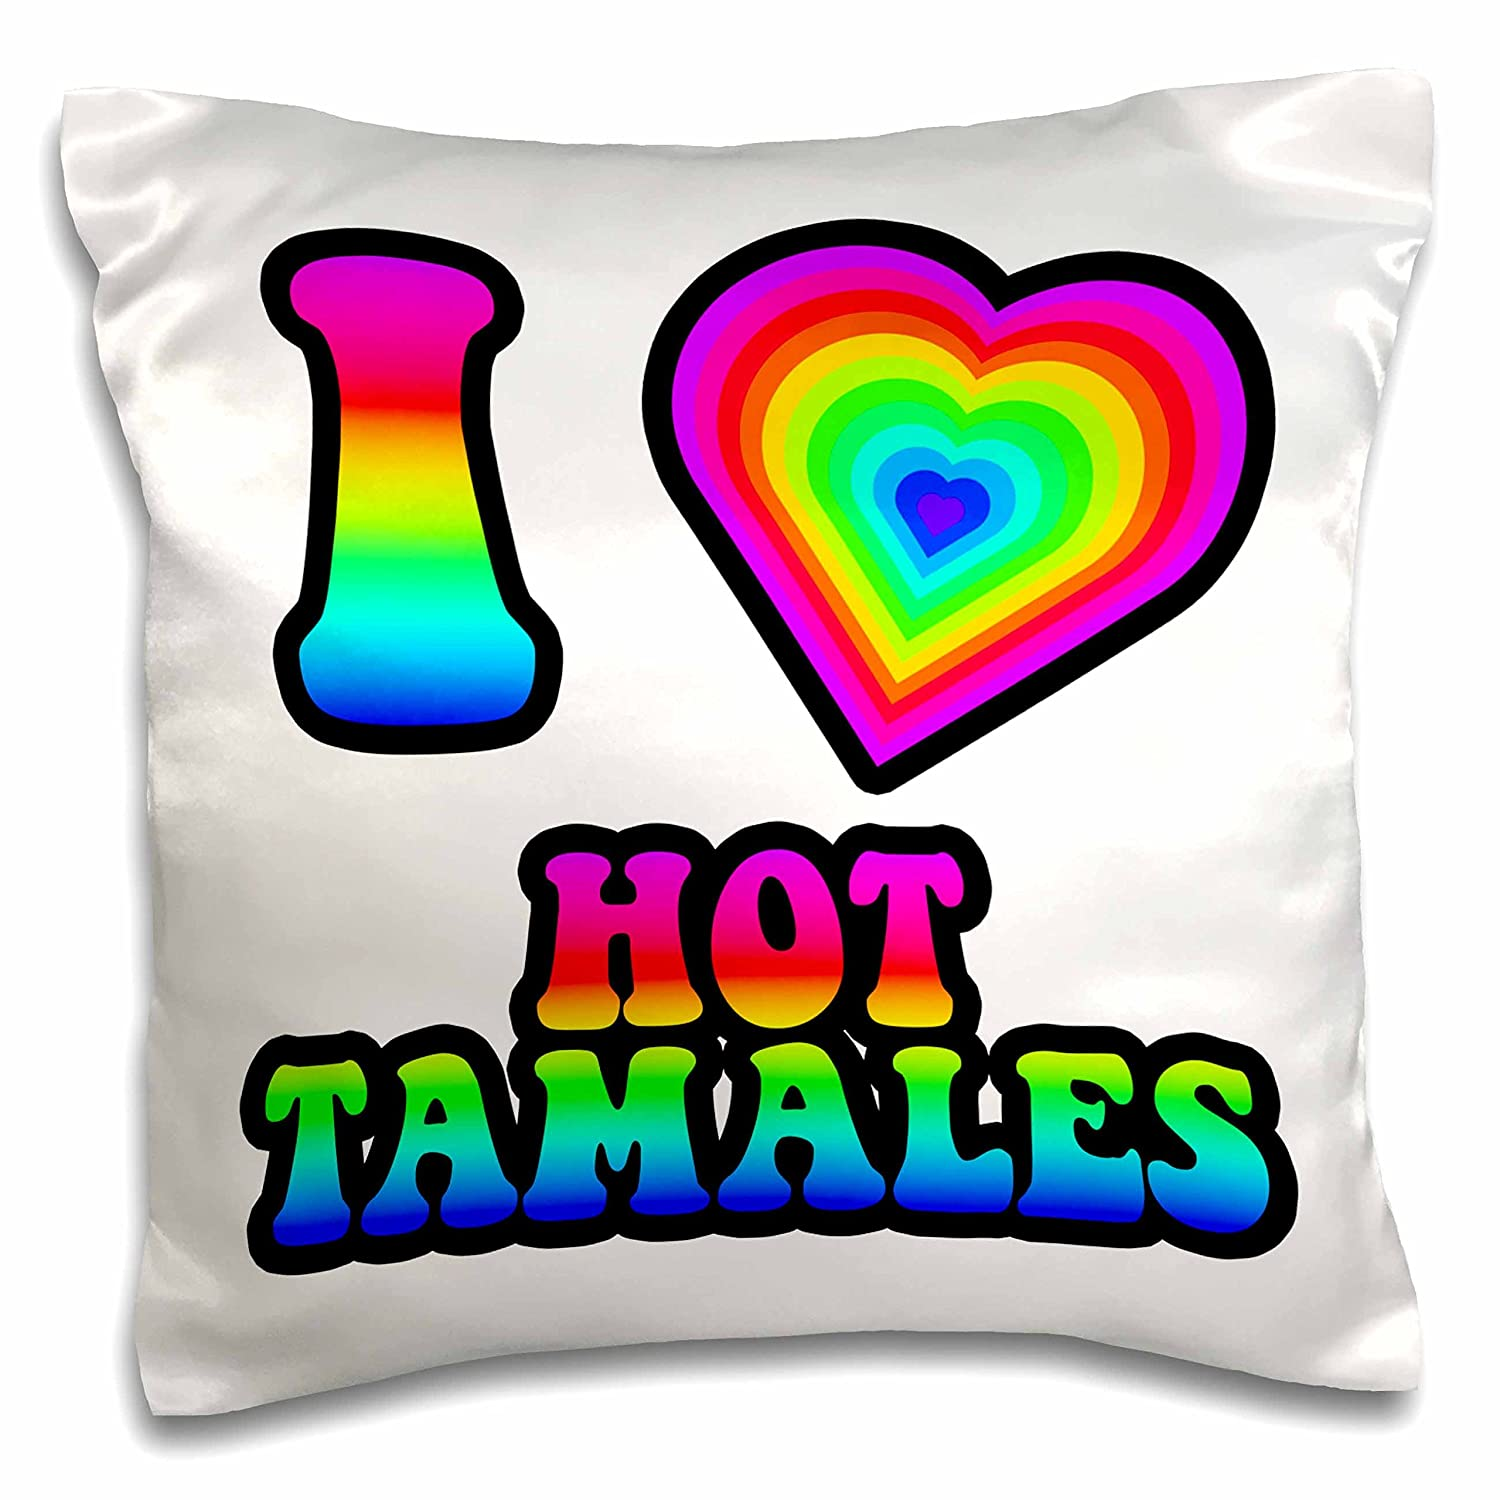 16 x 16 3dRose pc/_217455/_1 Groovy Hippie Rainbow I Heart Love Mac and Cheese Pillow Case